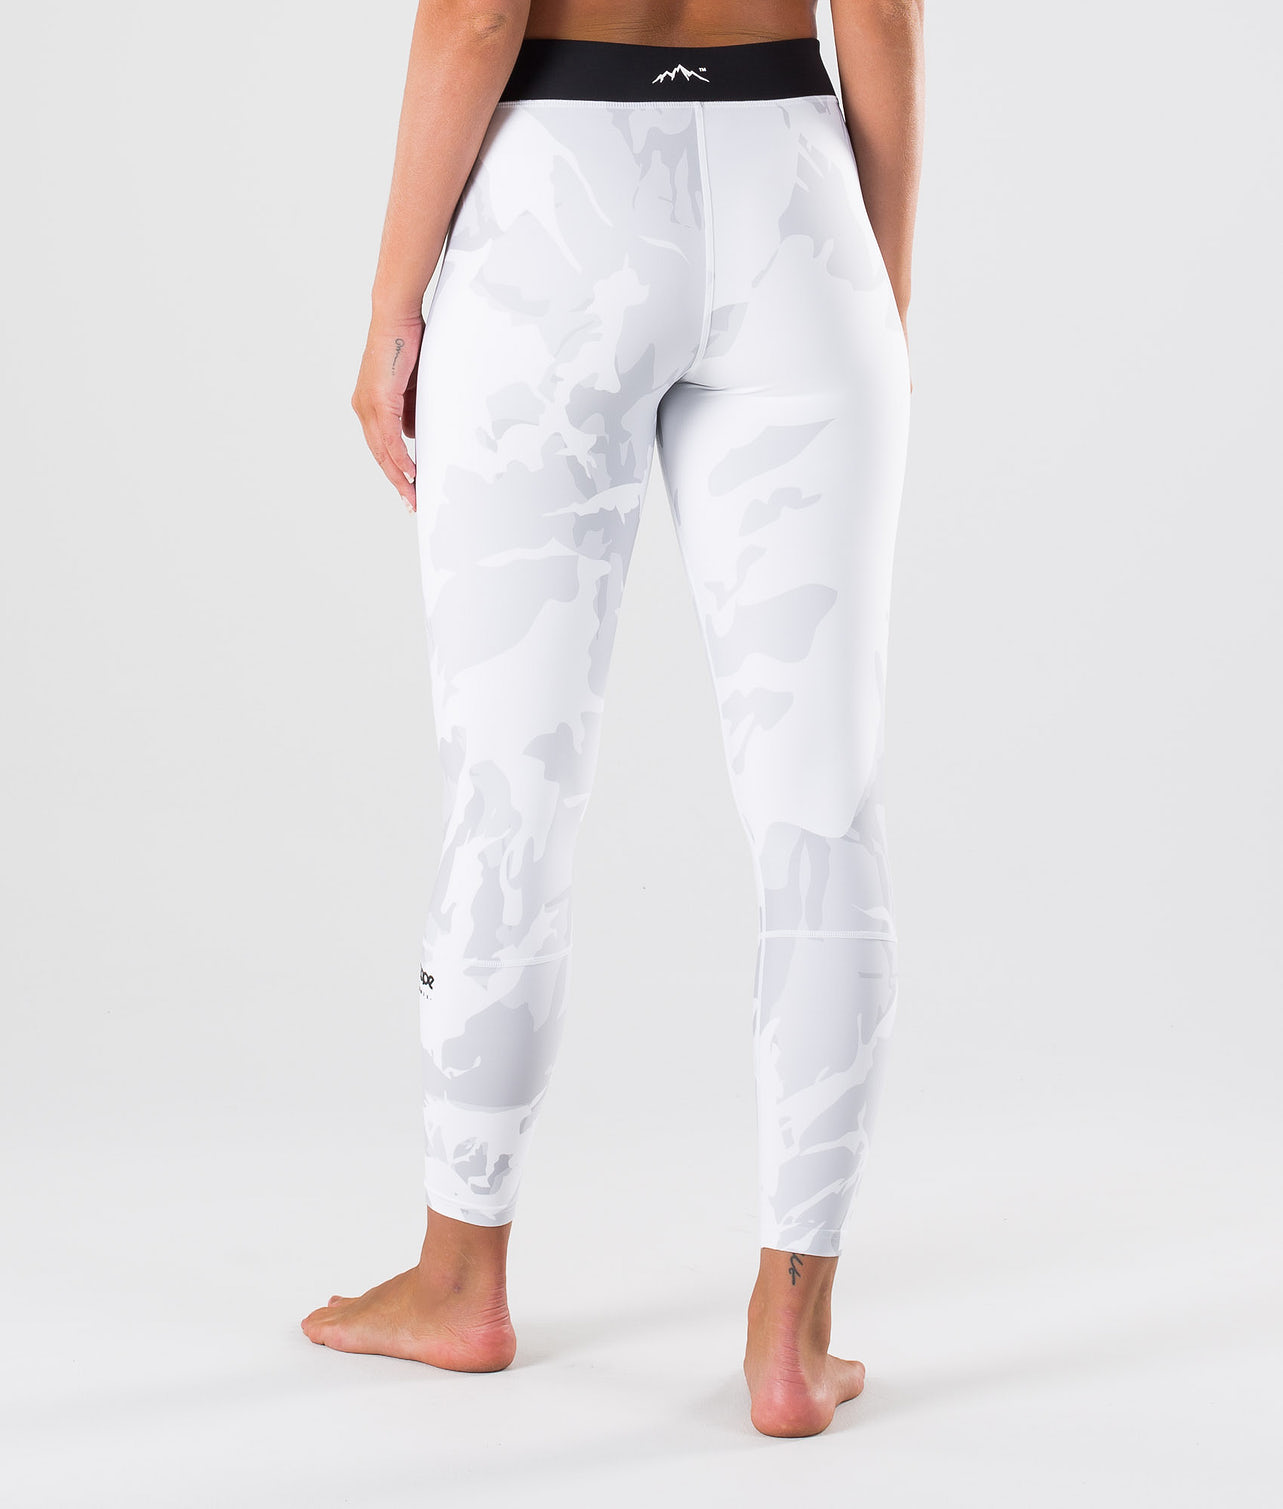 Buy Snuggle OG W Base Layer Pant from Dope at Ridestore.com - Always free shipping, free returns and 30 days money back guarantee